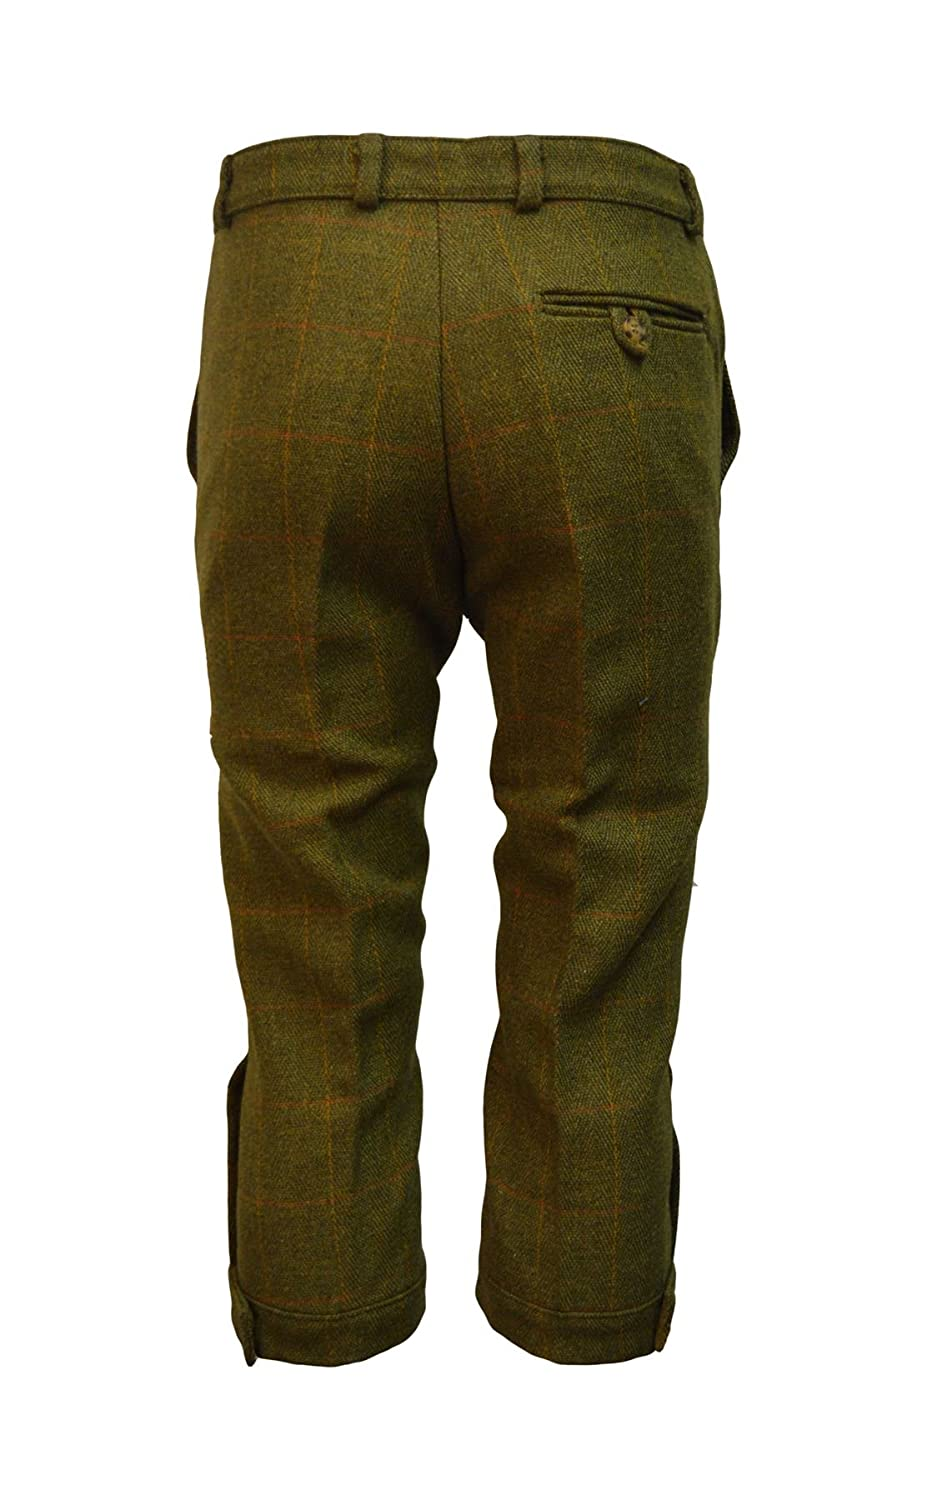 e8ea500b5707b Walker & Hawkes - Mens Derby Tweed Shooting Plus Fours Long Breeks Trousers  - Dark Sage - 32-42 at Amazon Men's Clothing store: